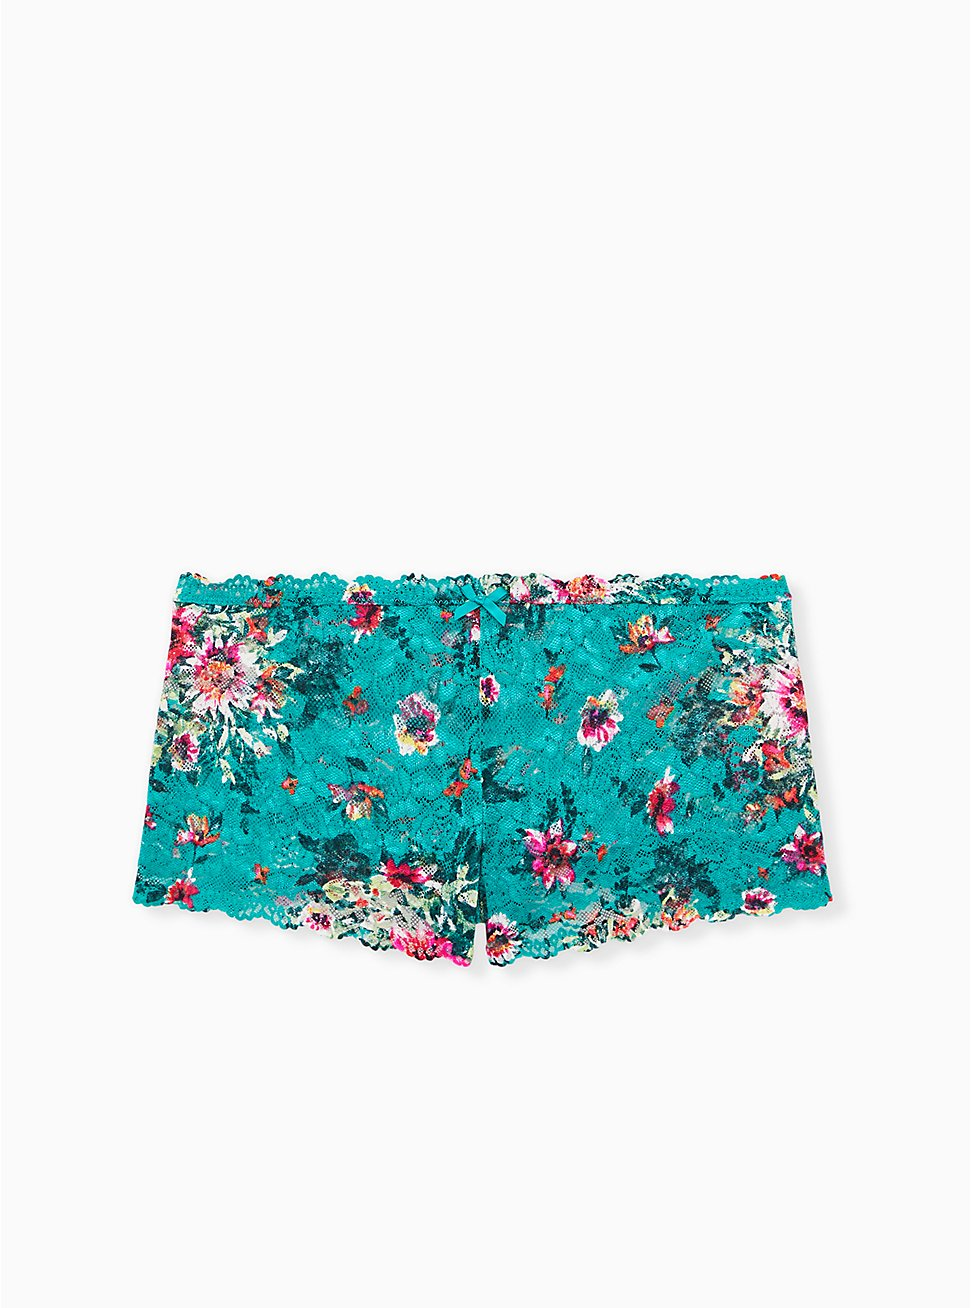 Turquoise Floral Lace Cheeky Panty , 2TONE, hi-res